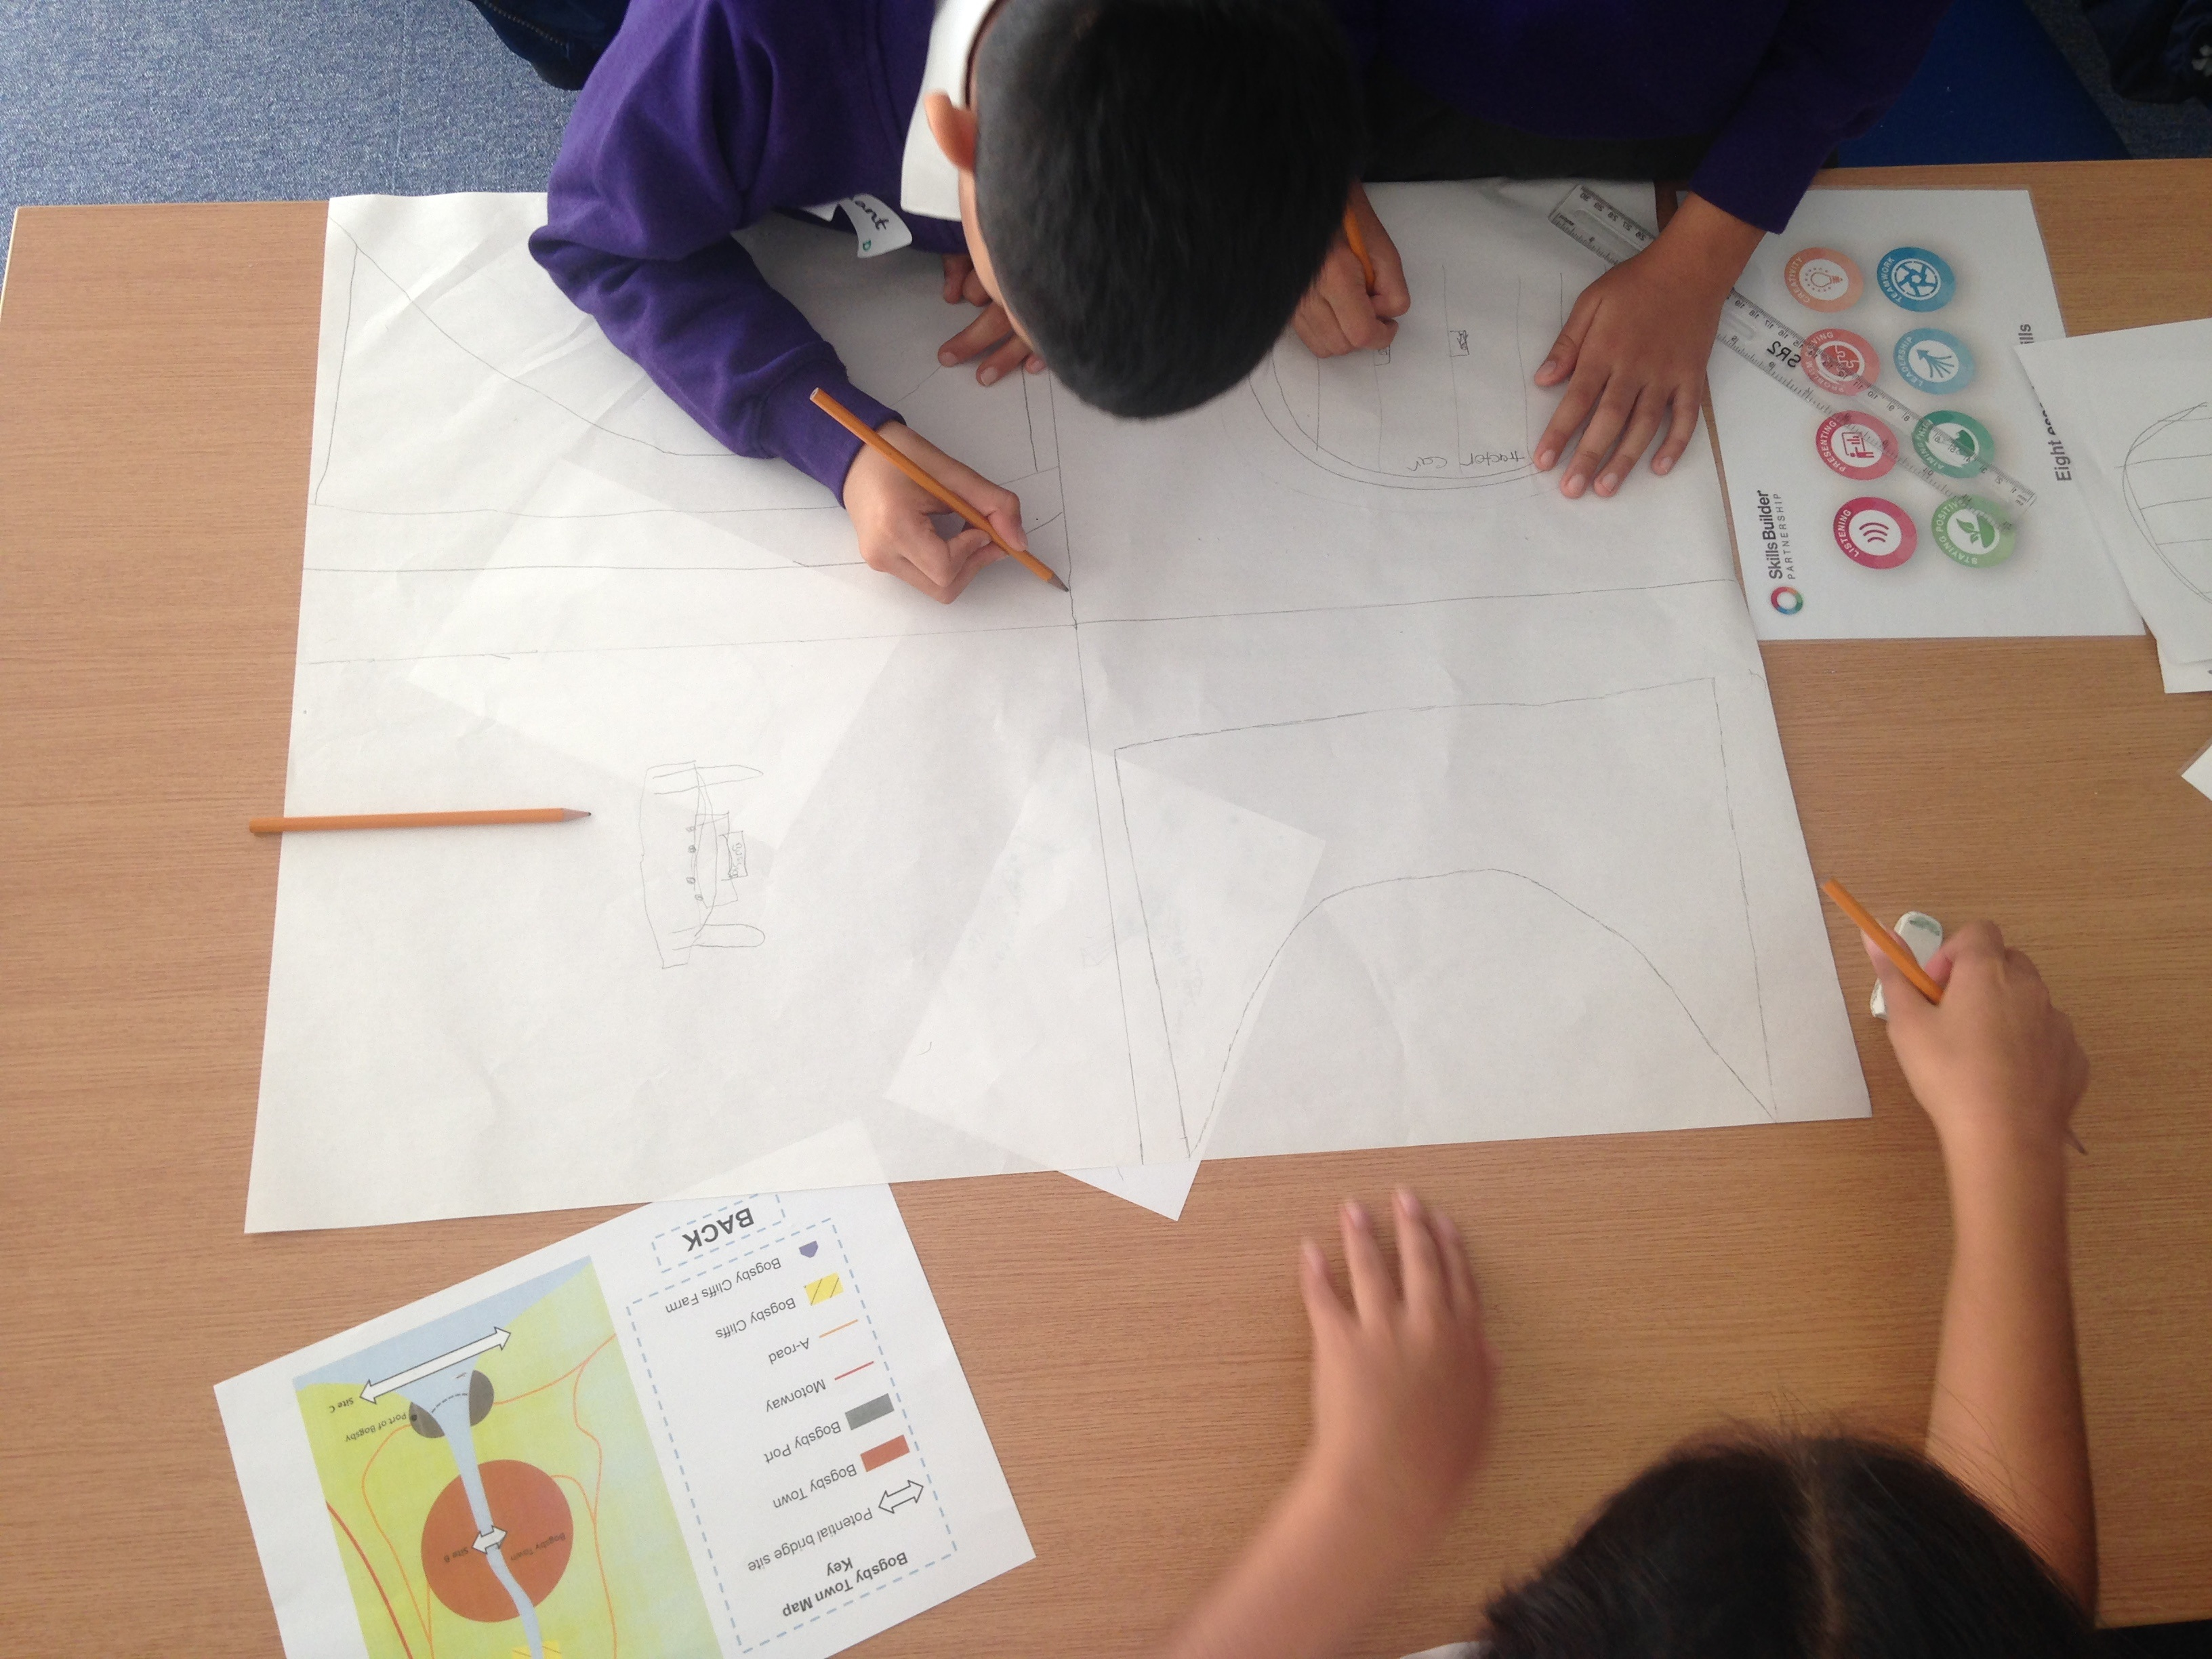 All hands on deck for drawing their architectural bridge designs as a team.